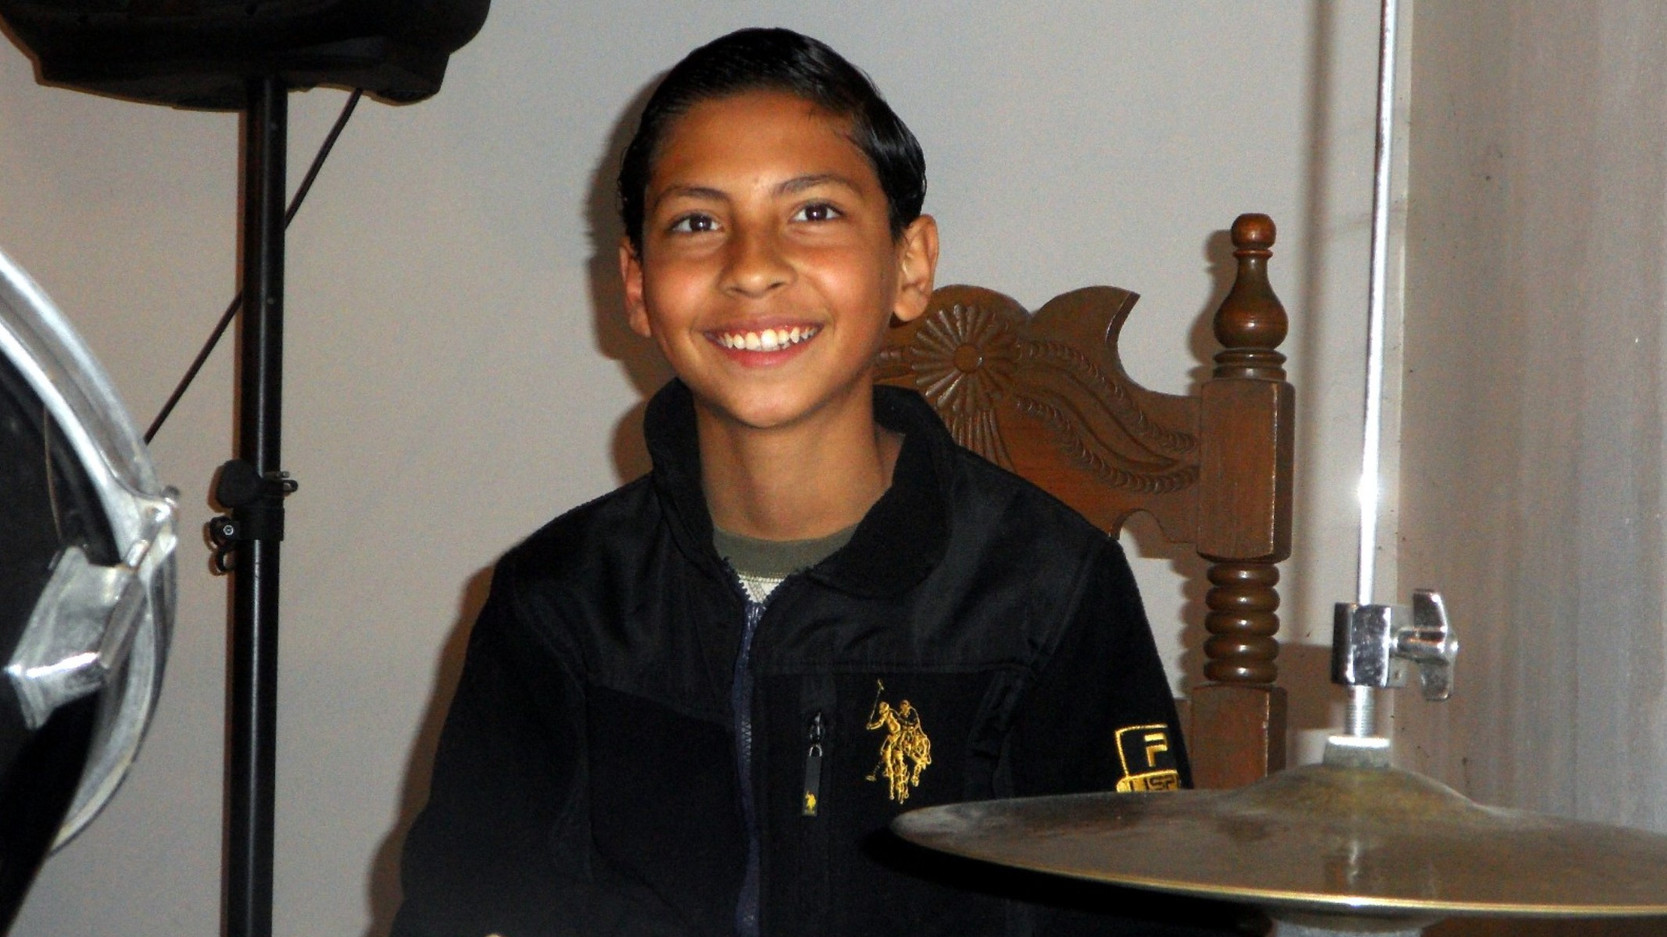 Oseas, Pastor Luis' adopted son